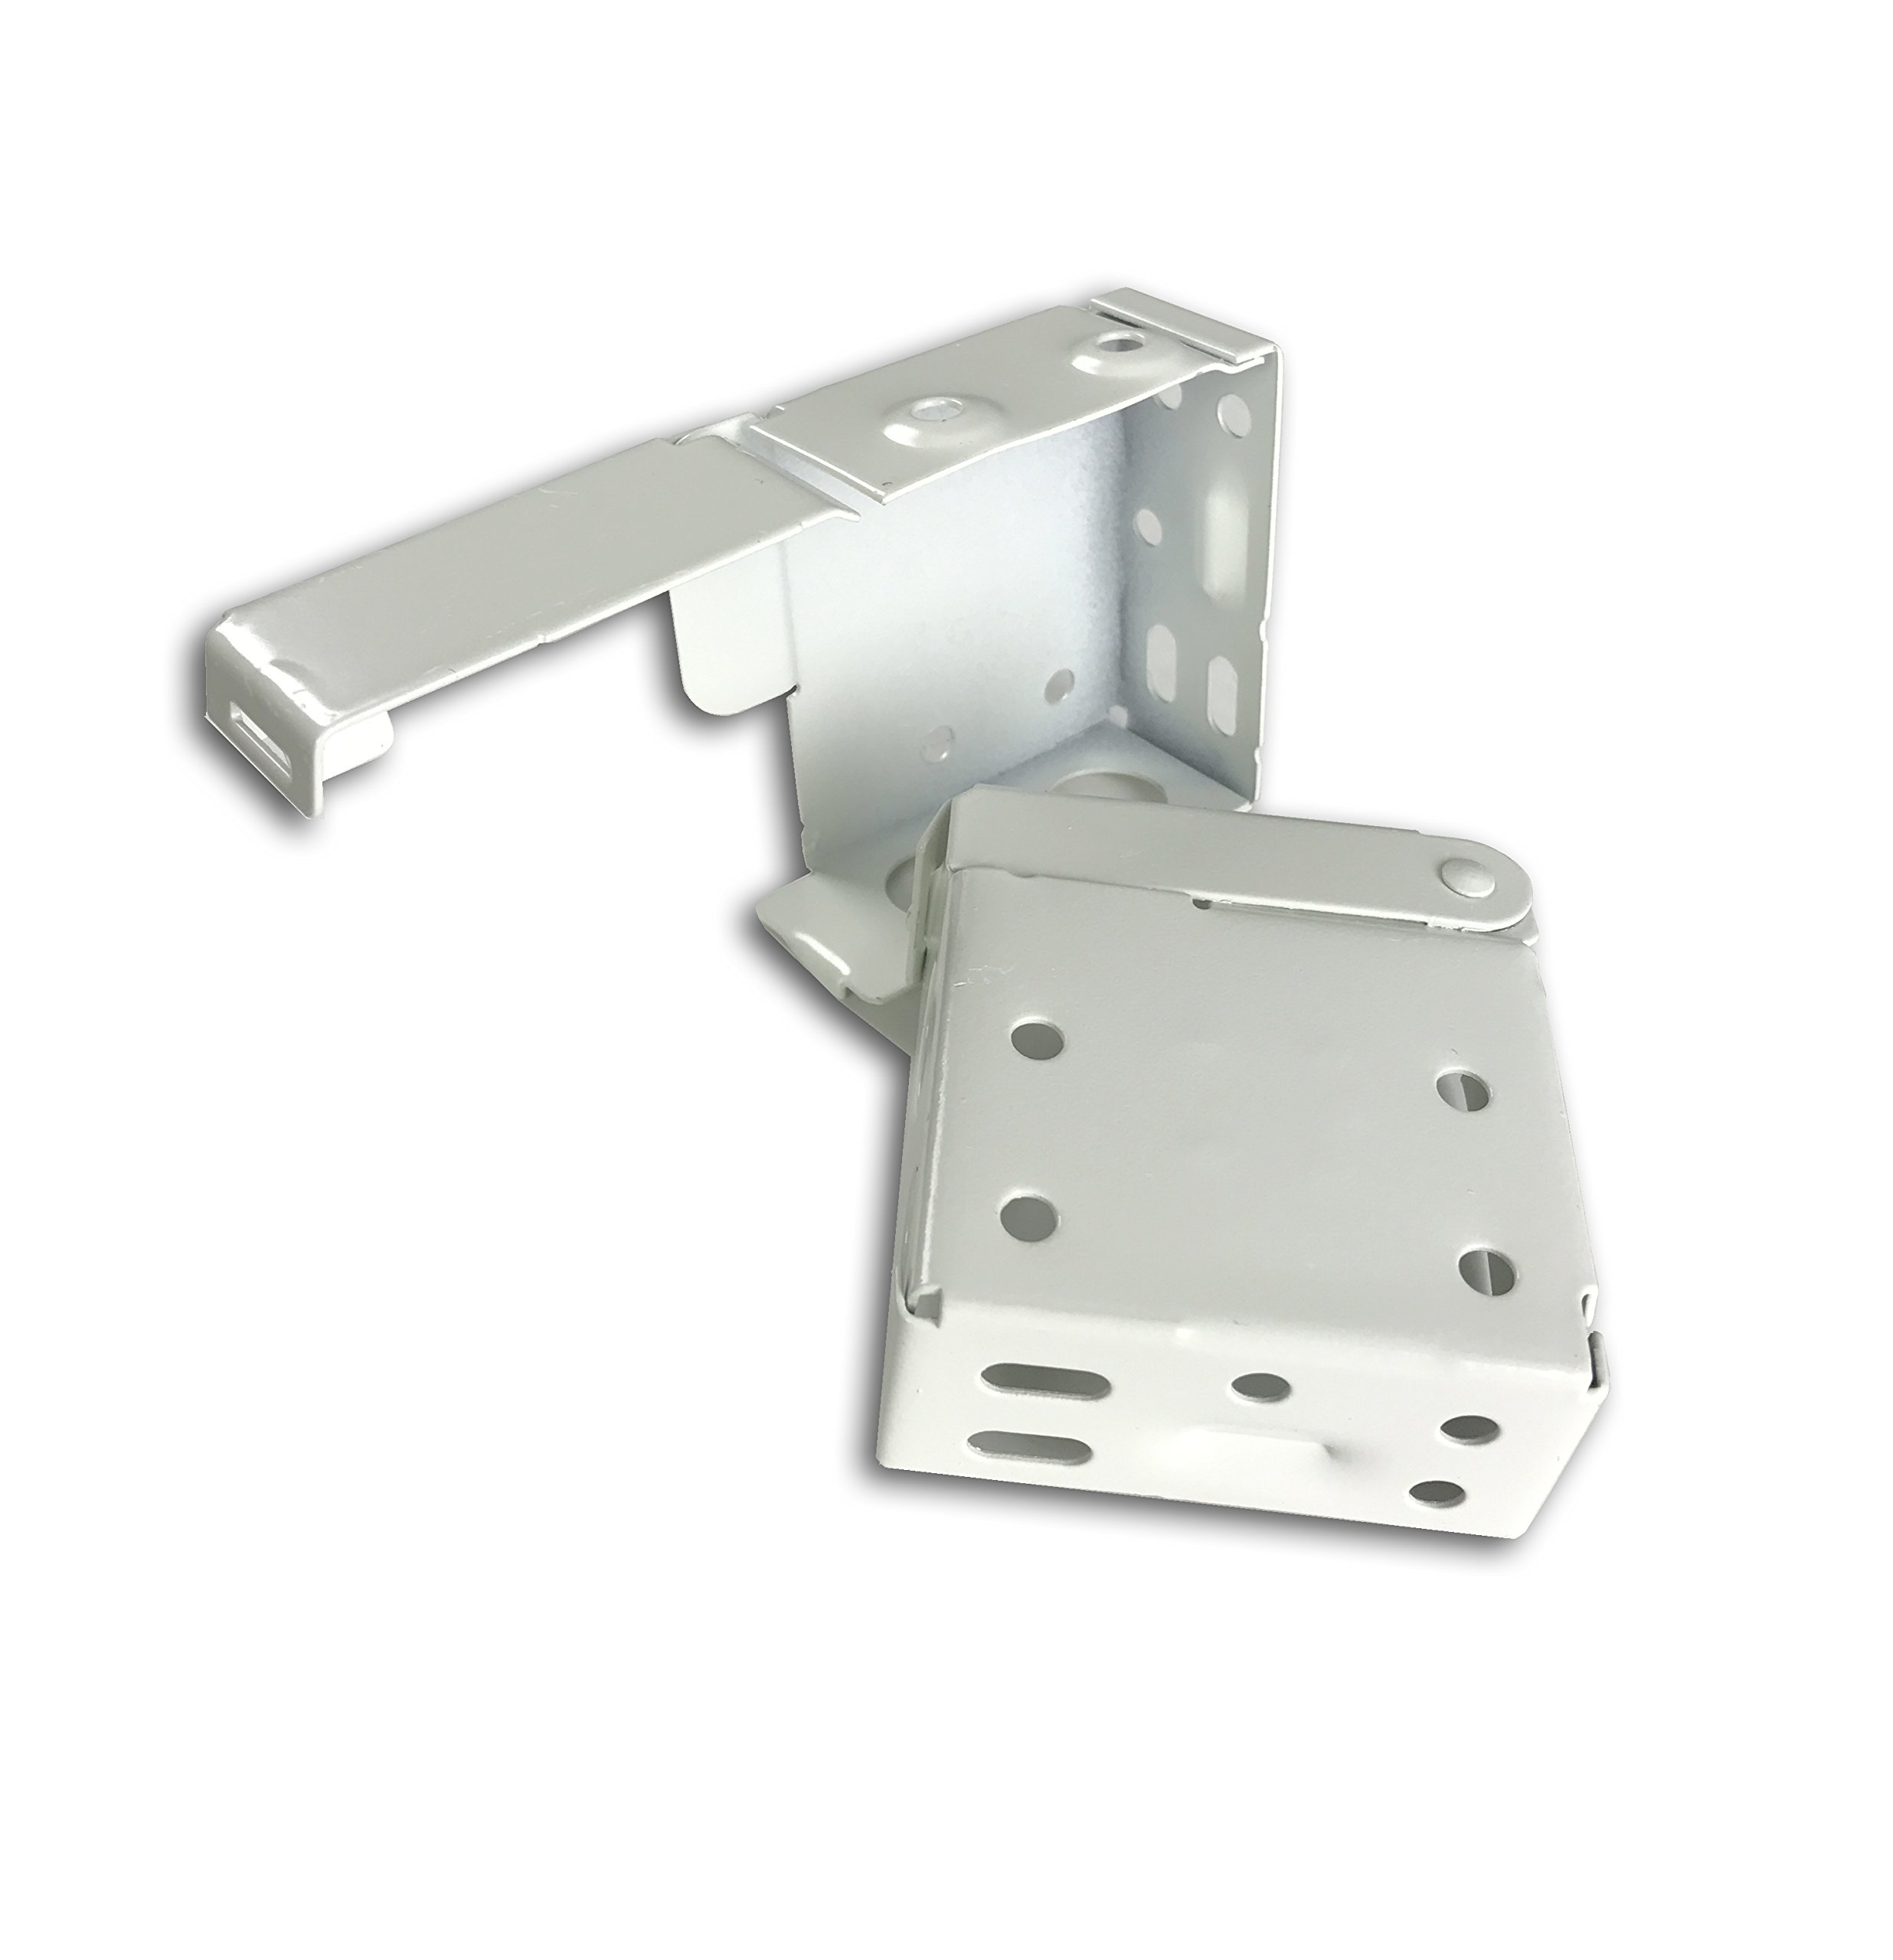 US Window And Floor 816282023343 2 in. Blind Installation Brackets, White (2 Pack)